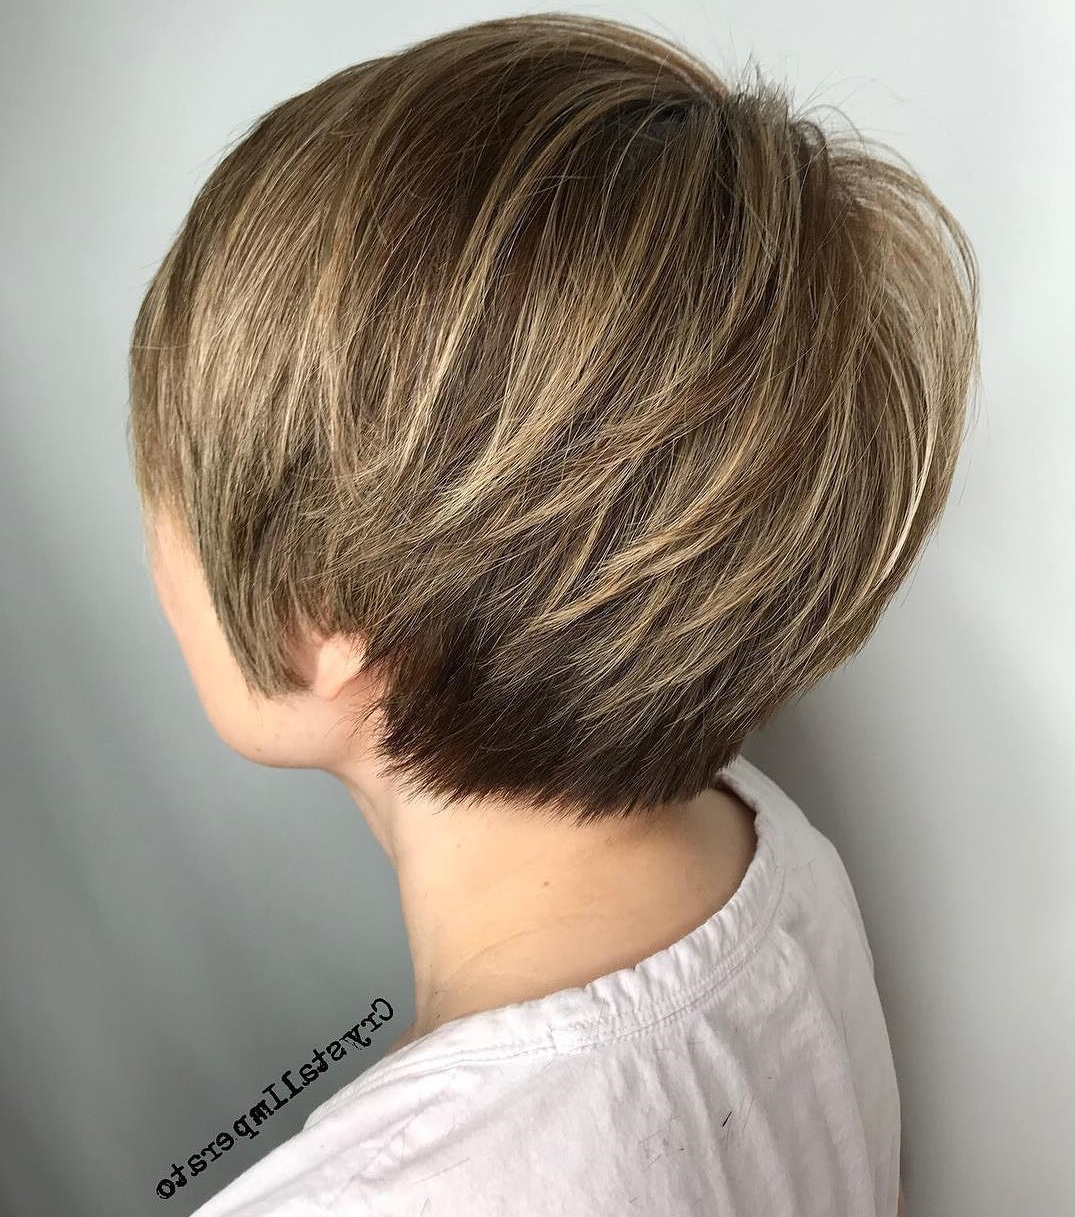 50 Hottest Pixie Cut Hairstyles In 2019 Intended For Long Pixie Haircuts With Sharp Layers And Highlights (View 2 of 20)